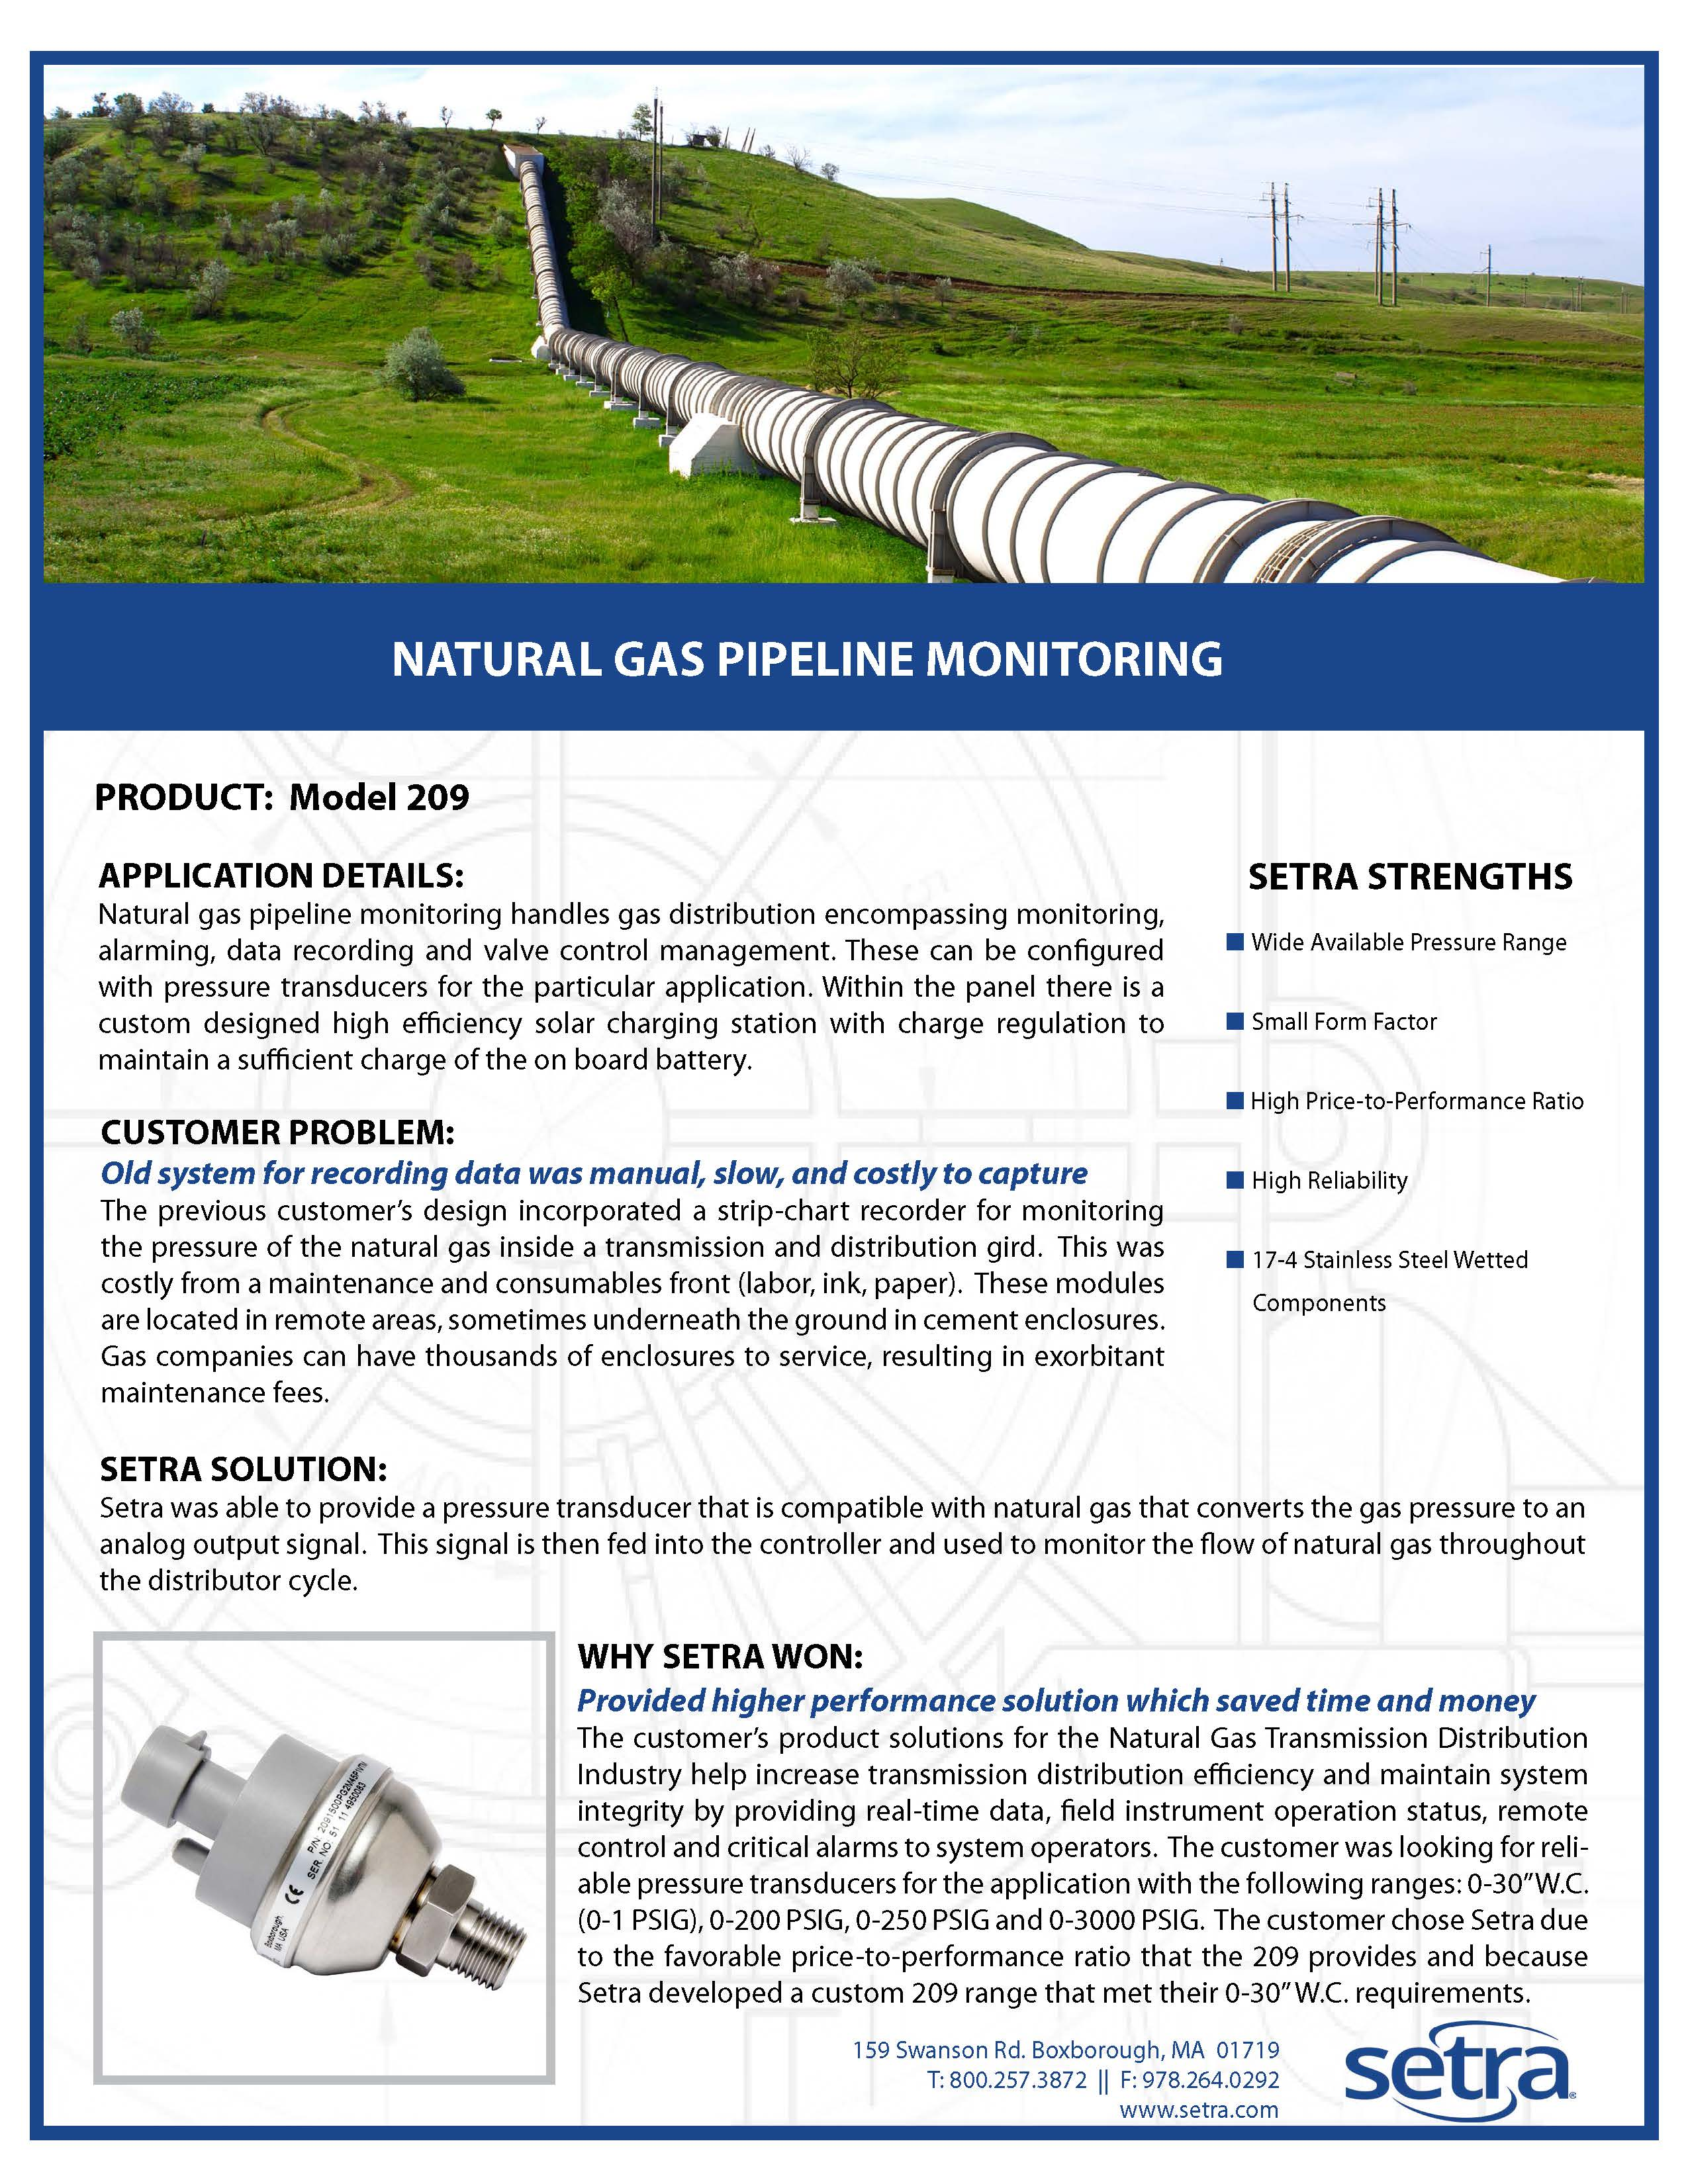 setra 209; oil and gas; natural gas pipeline; pressure transducers; pressure monitoring